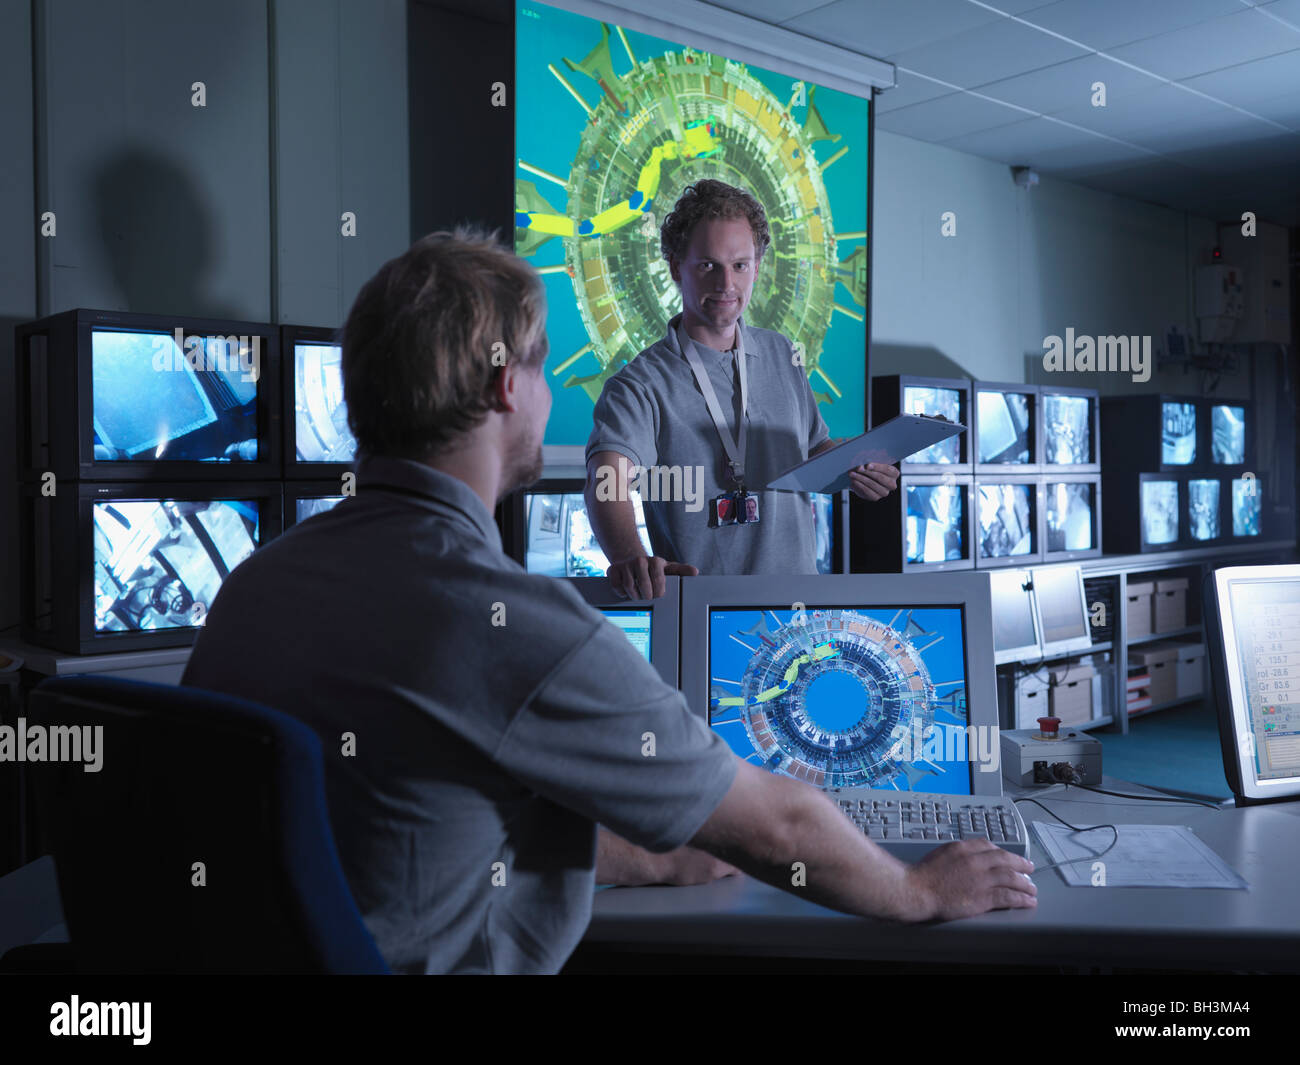 Fusion Reactor Scientists At Work - Stock Image